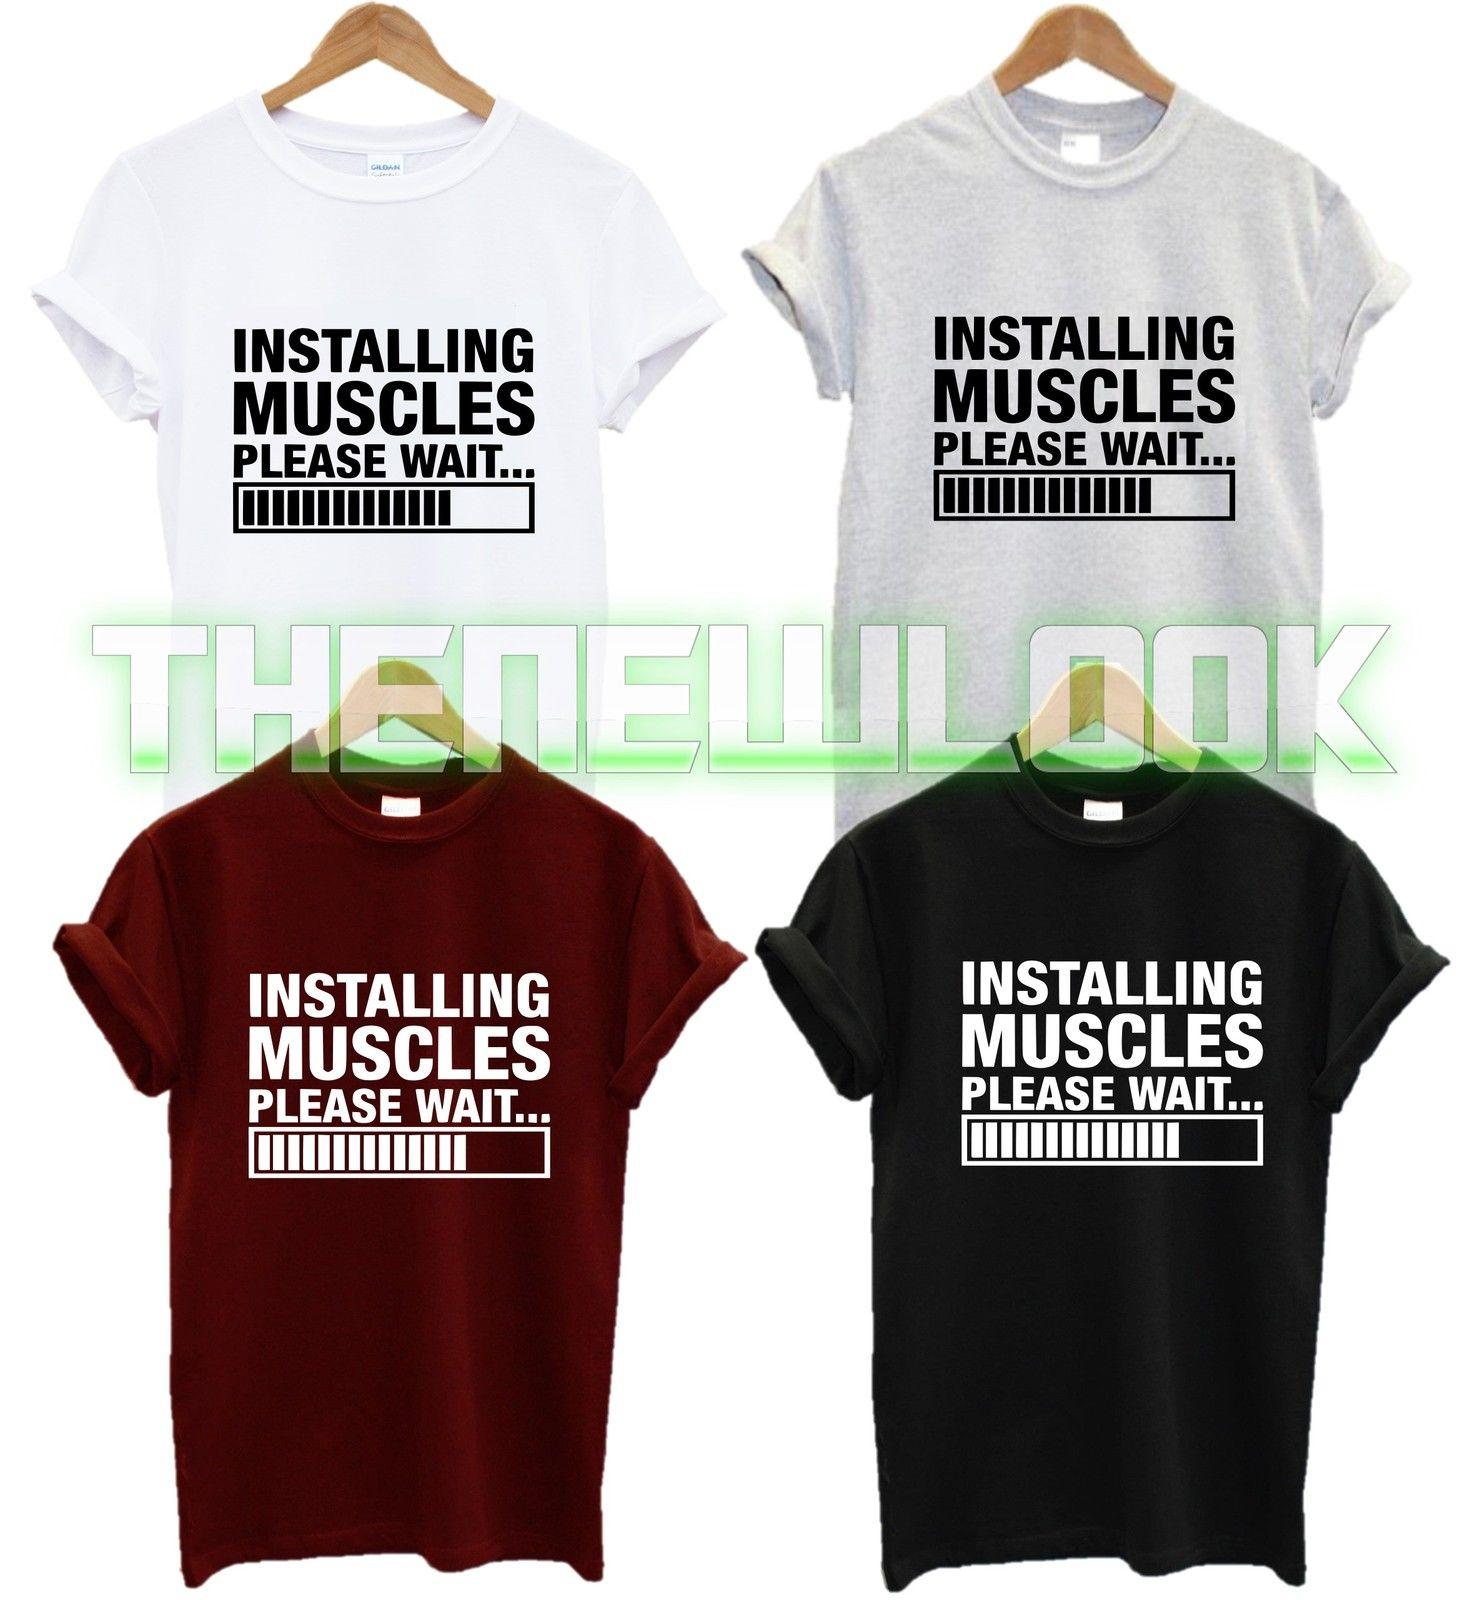 728f8b2a INSTALLING MUSCLES PLEASE WAIT T SHIRT WORKOUT ID FITNESS SQUAT WEIGHTS GYM  NEW Funny Unisex Casual Gift On T Shirts It Tee Shirts From  Fashionistas_tees, ...